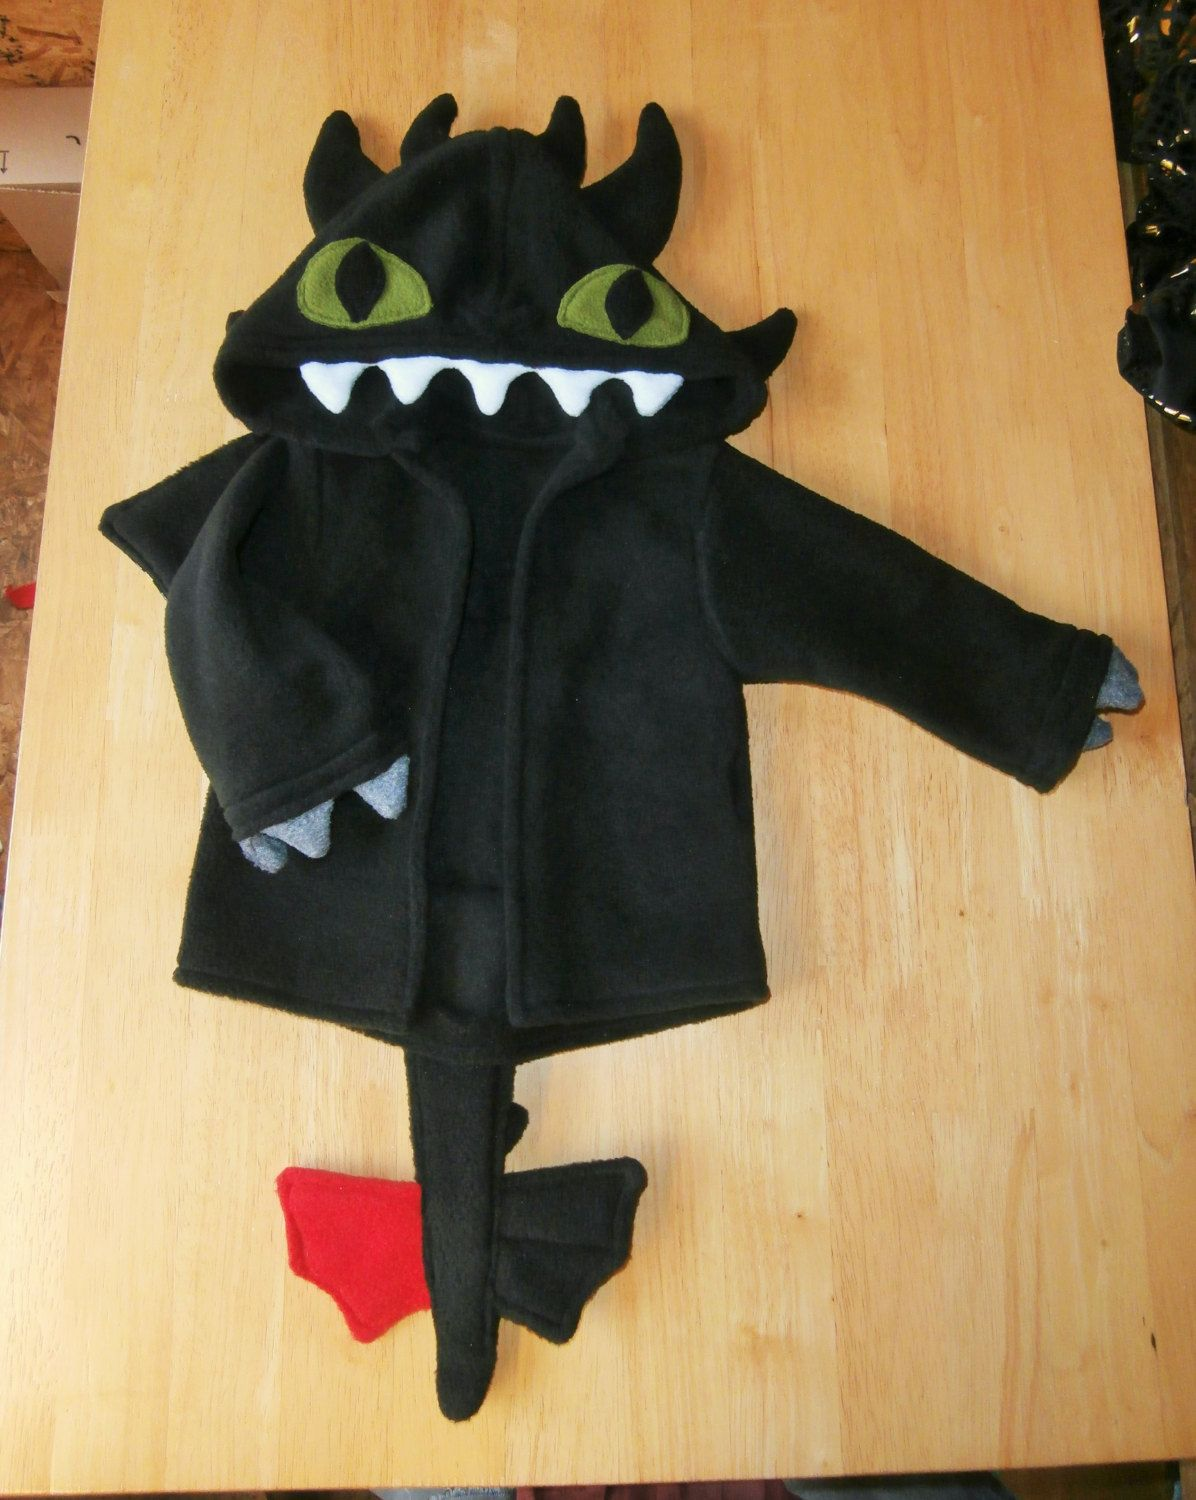 Baby toothless style dragon hoodie how to train your dragon baby toothless style dragon hoodie how to train your dragon fancy dress costumehooded jacket spikes eyes claws wings tail ccuart Image collections